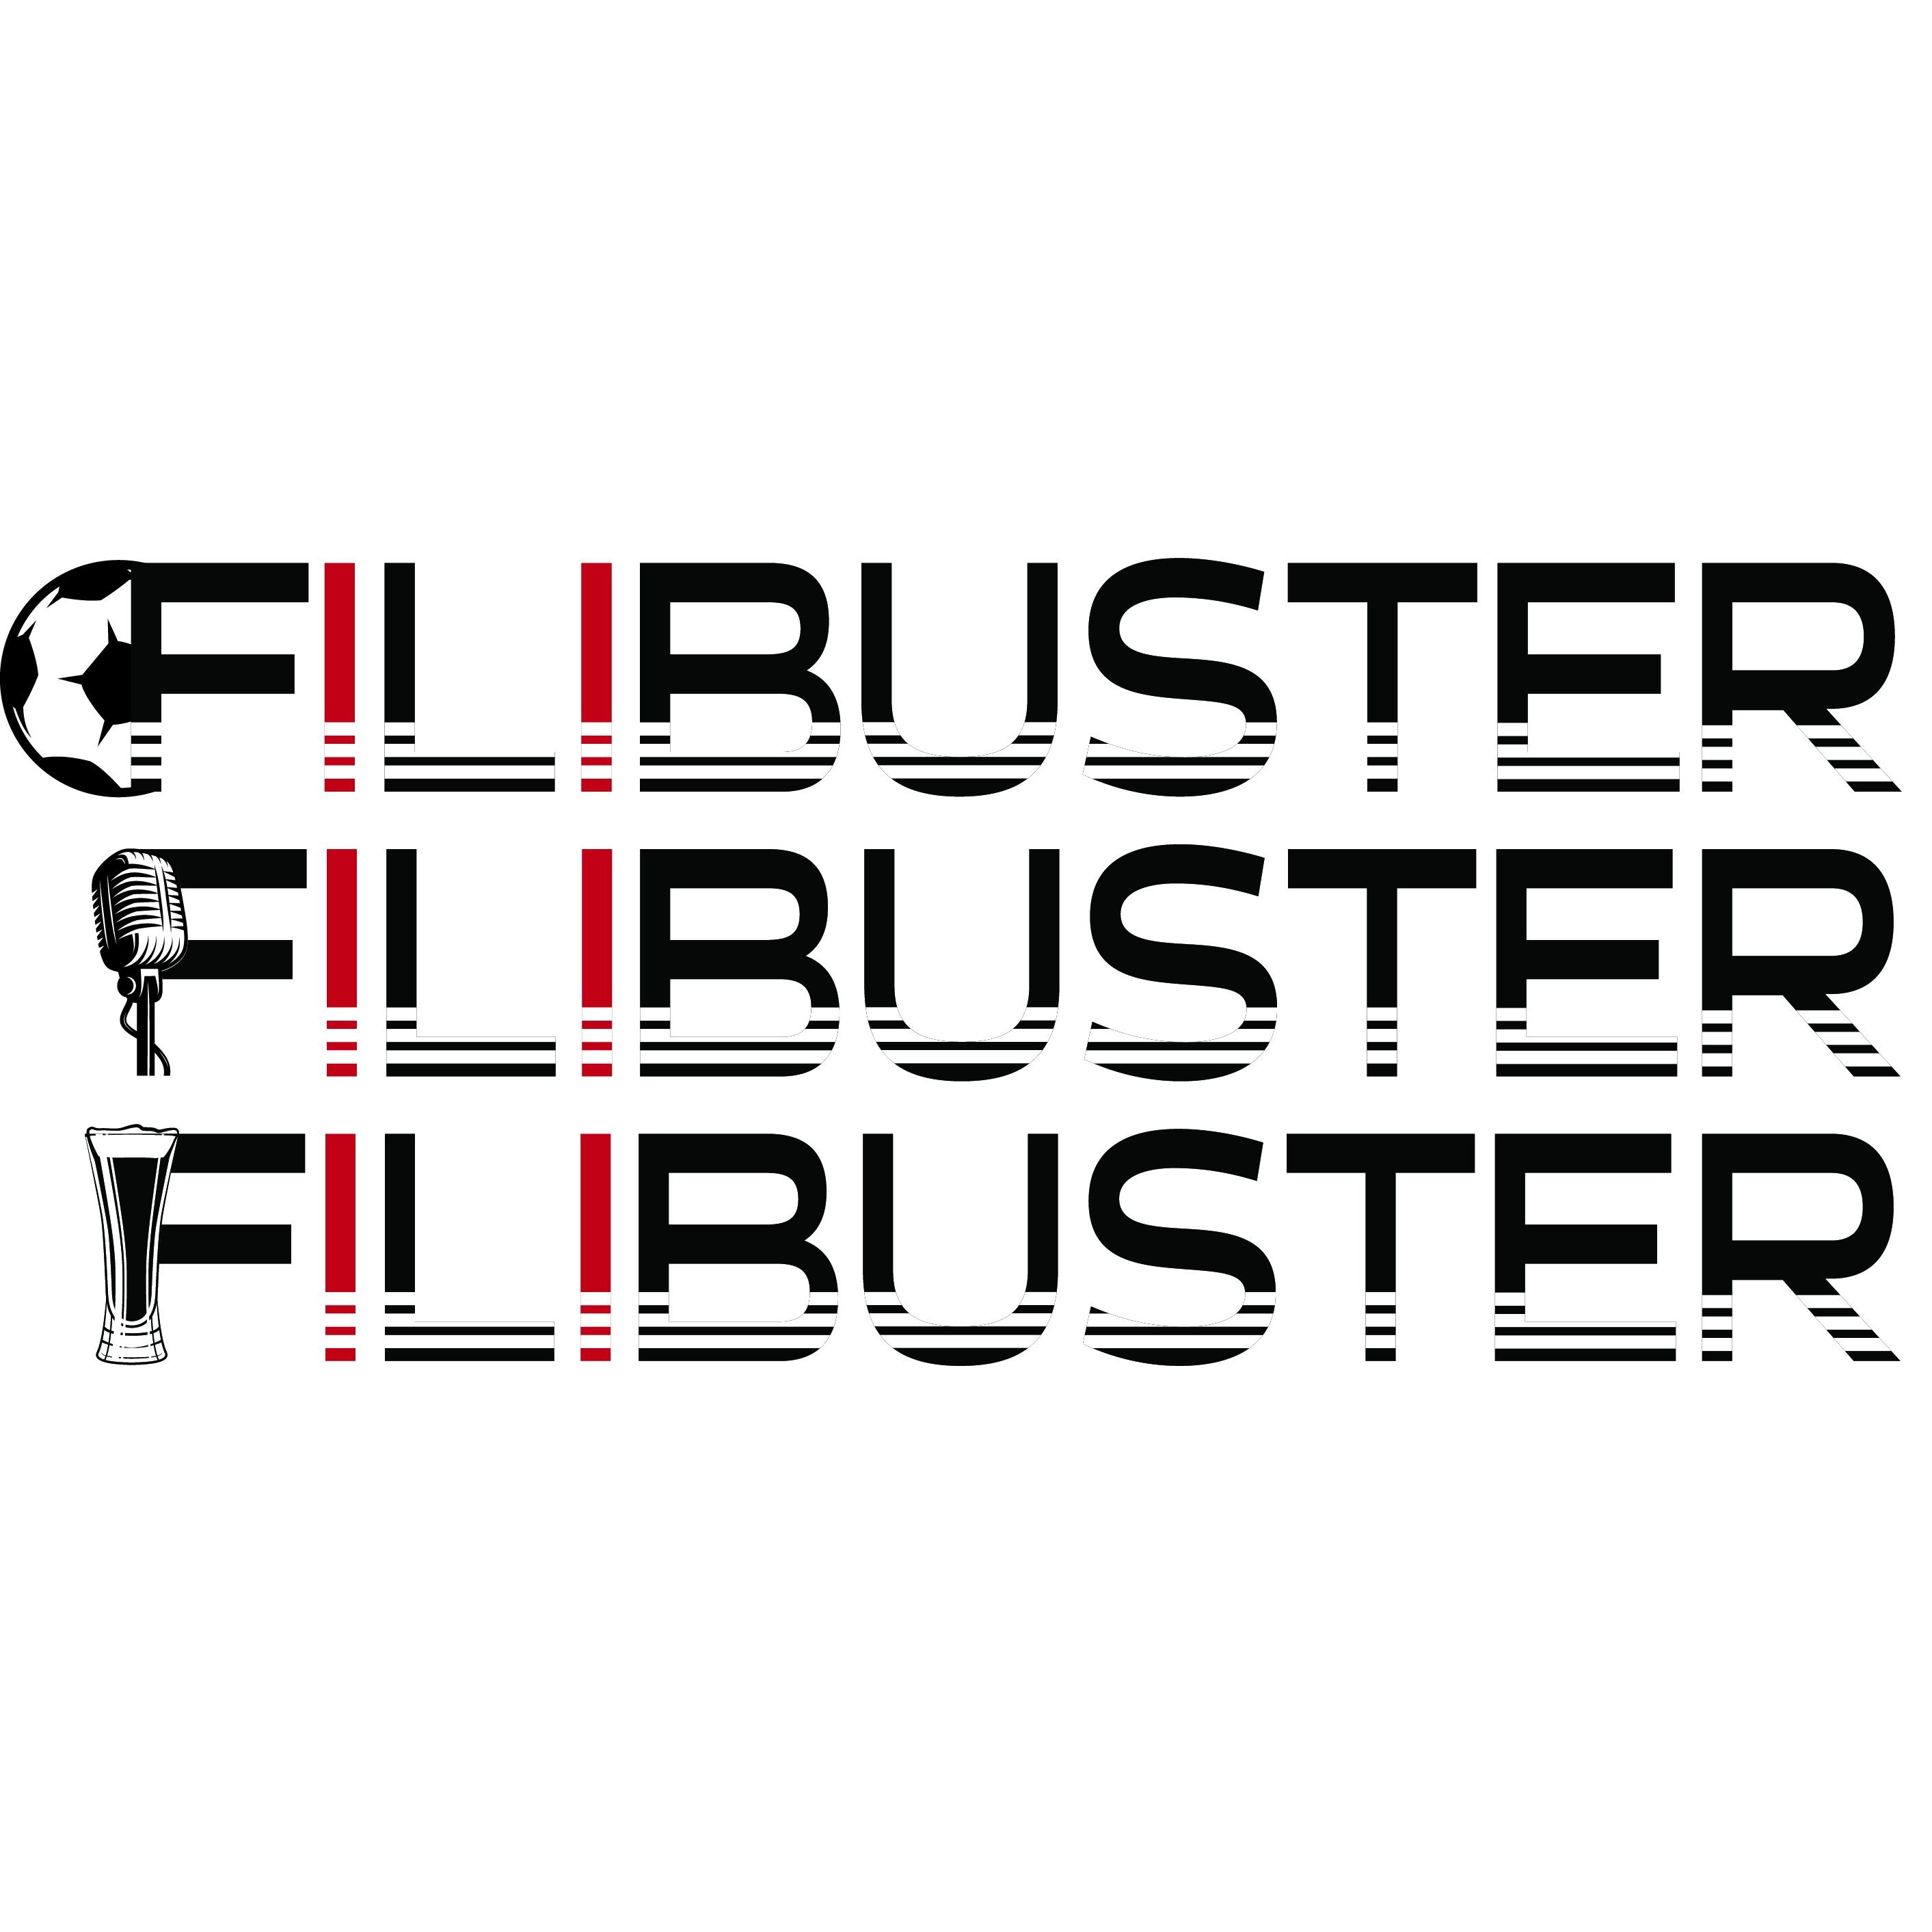 Filibuster podcast episode 181: Beyond the barbecue sauce